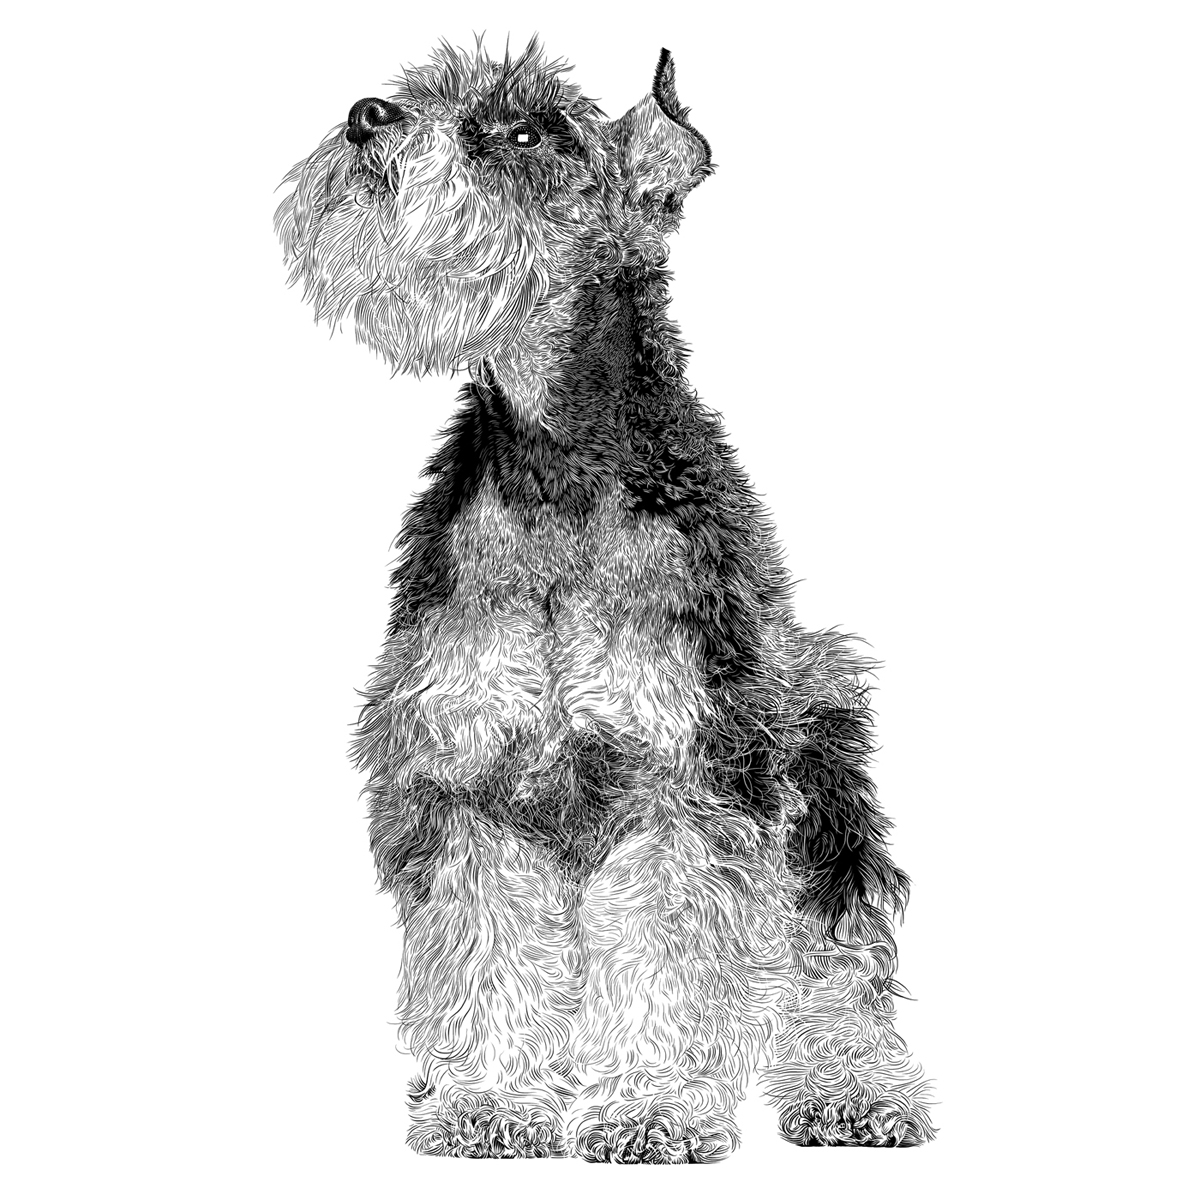 Pen & Ink Illustrations- Animals